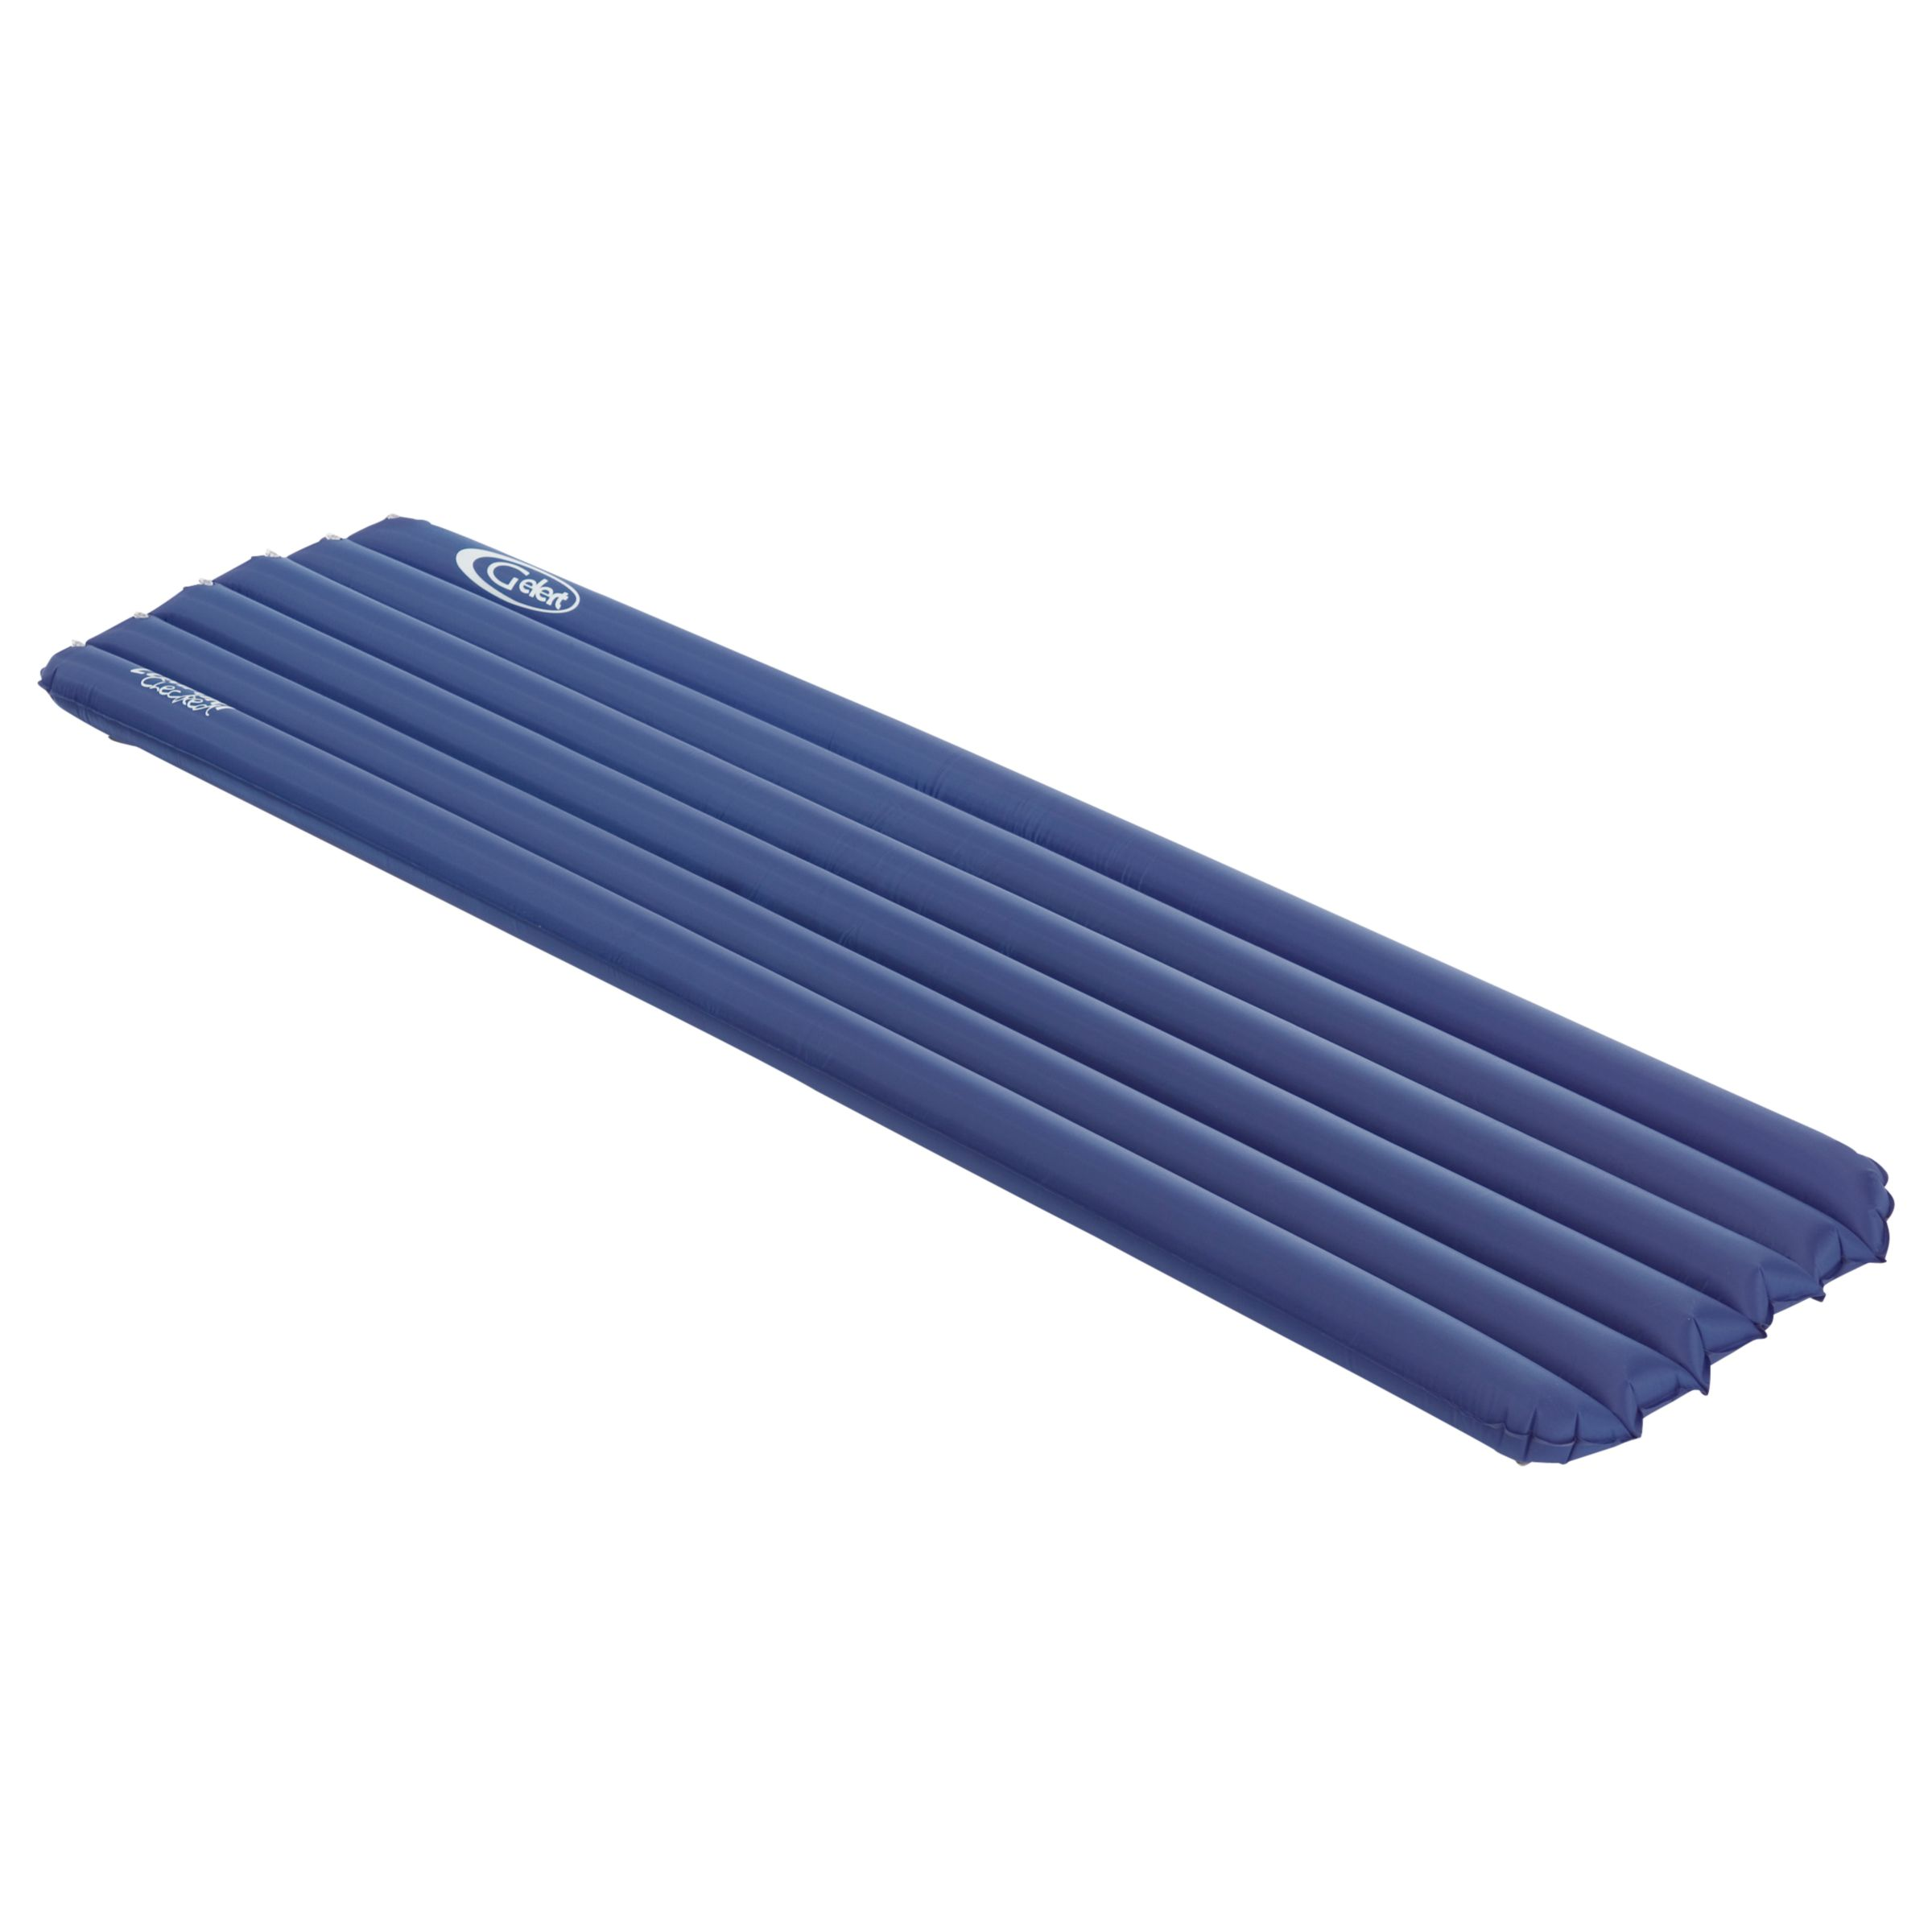 Gelert Backpacker Reeded Airbed